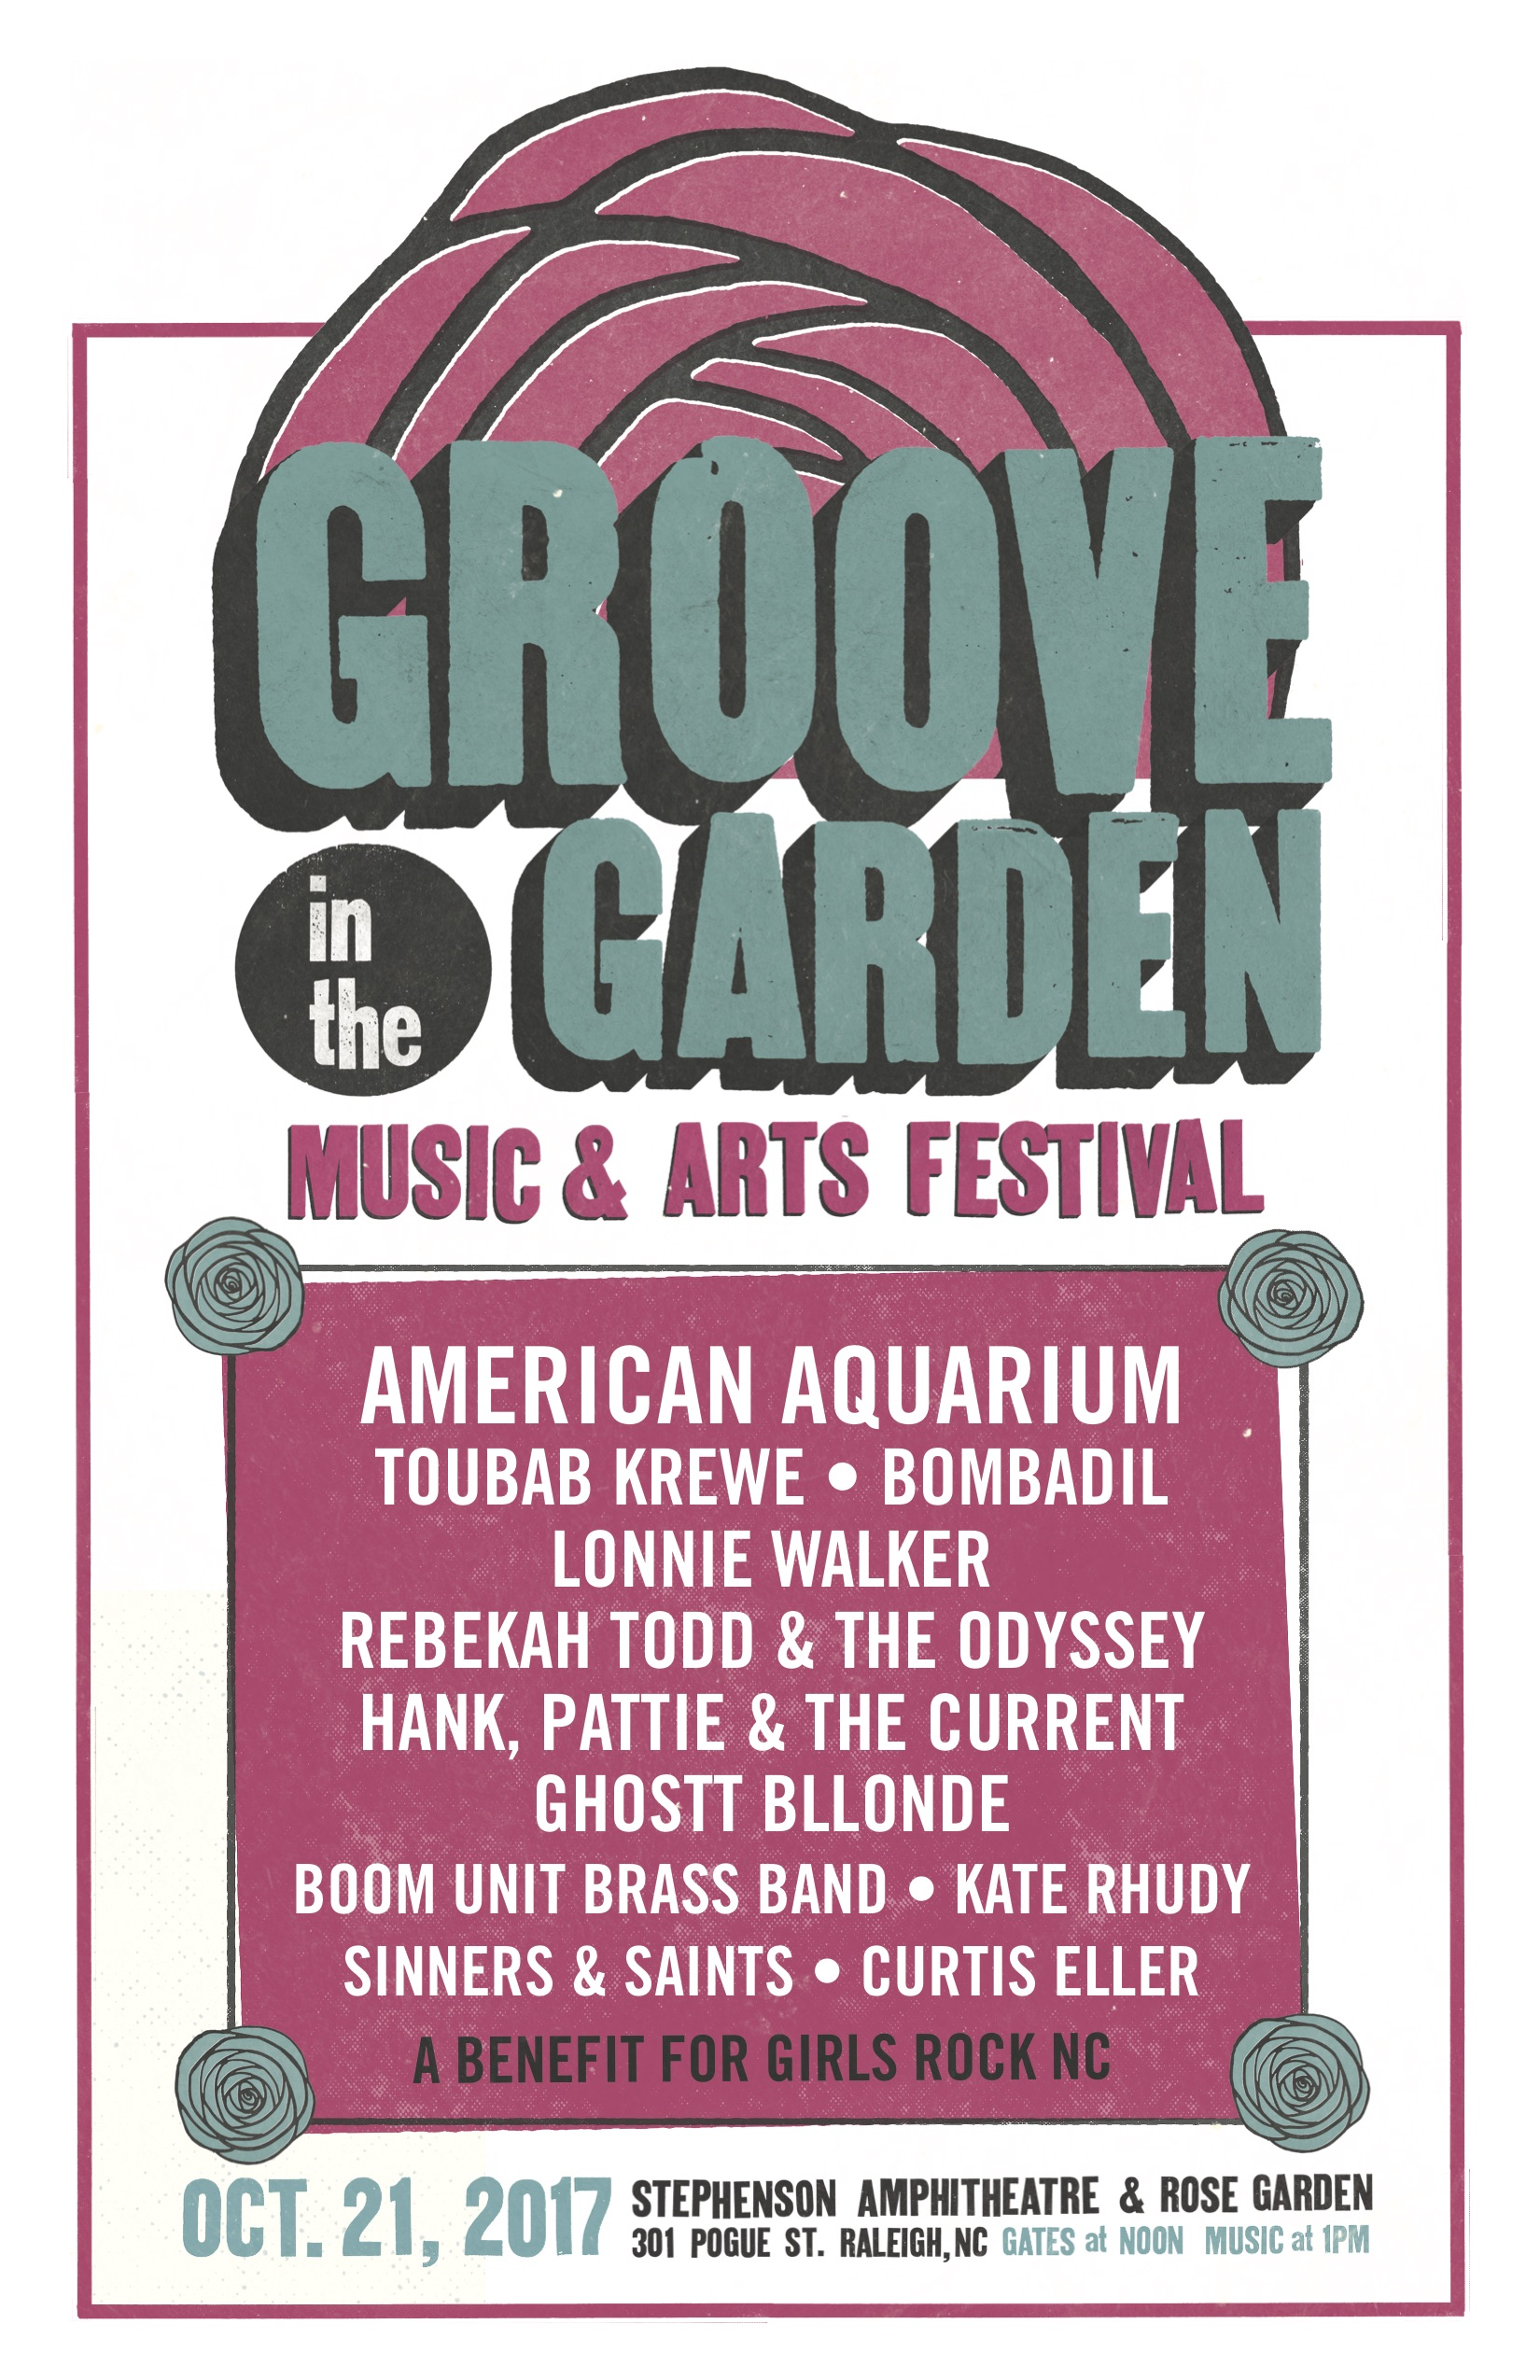 Groove in the Garden 2017 - Come out to the Raleigh Rose Garden and Ampitheater this Saturday Oct 21st 10am -6pm for Art and Food Trucks and Music(Music until 9pm!) I will have a booth with my #eyeswideopen photos printed on watercolor, notecards and portfolio of my portrait work. Come by and say hi!http://thepourhousemusichall.com/event/groove-in-the-garden-2/